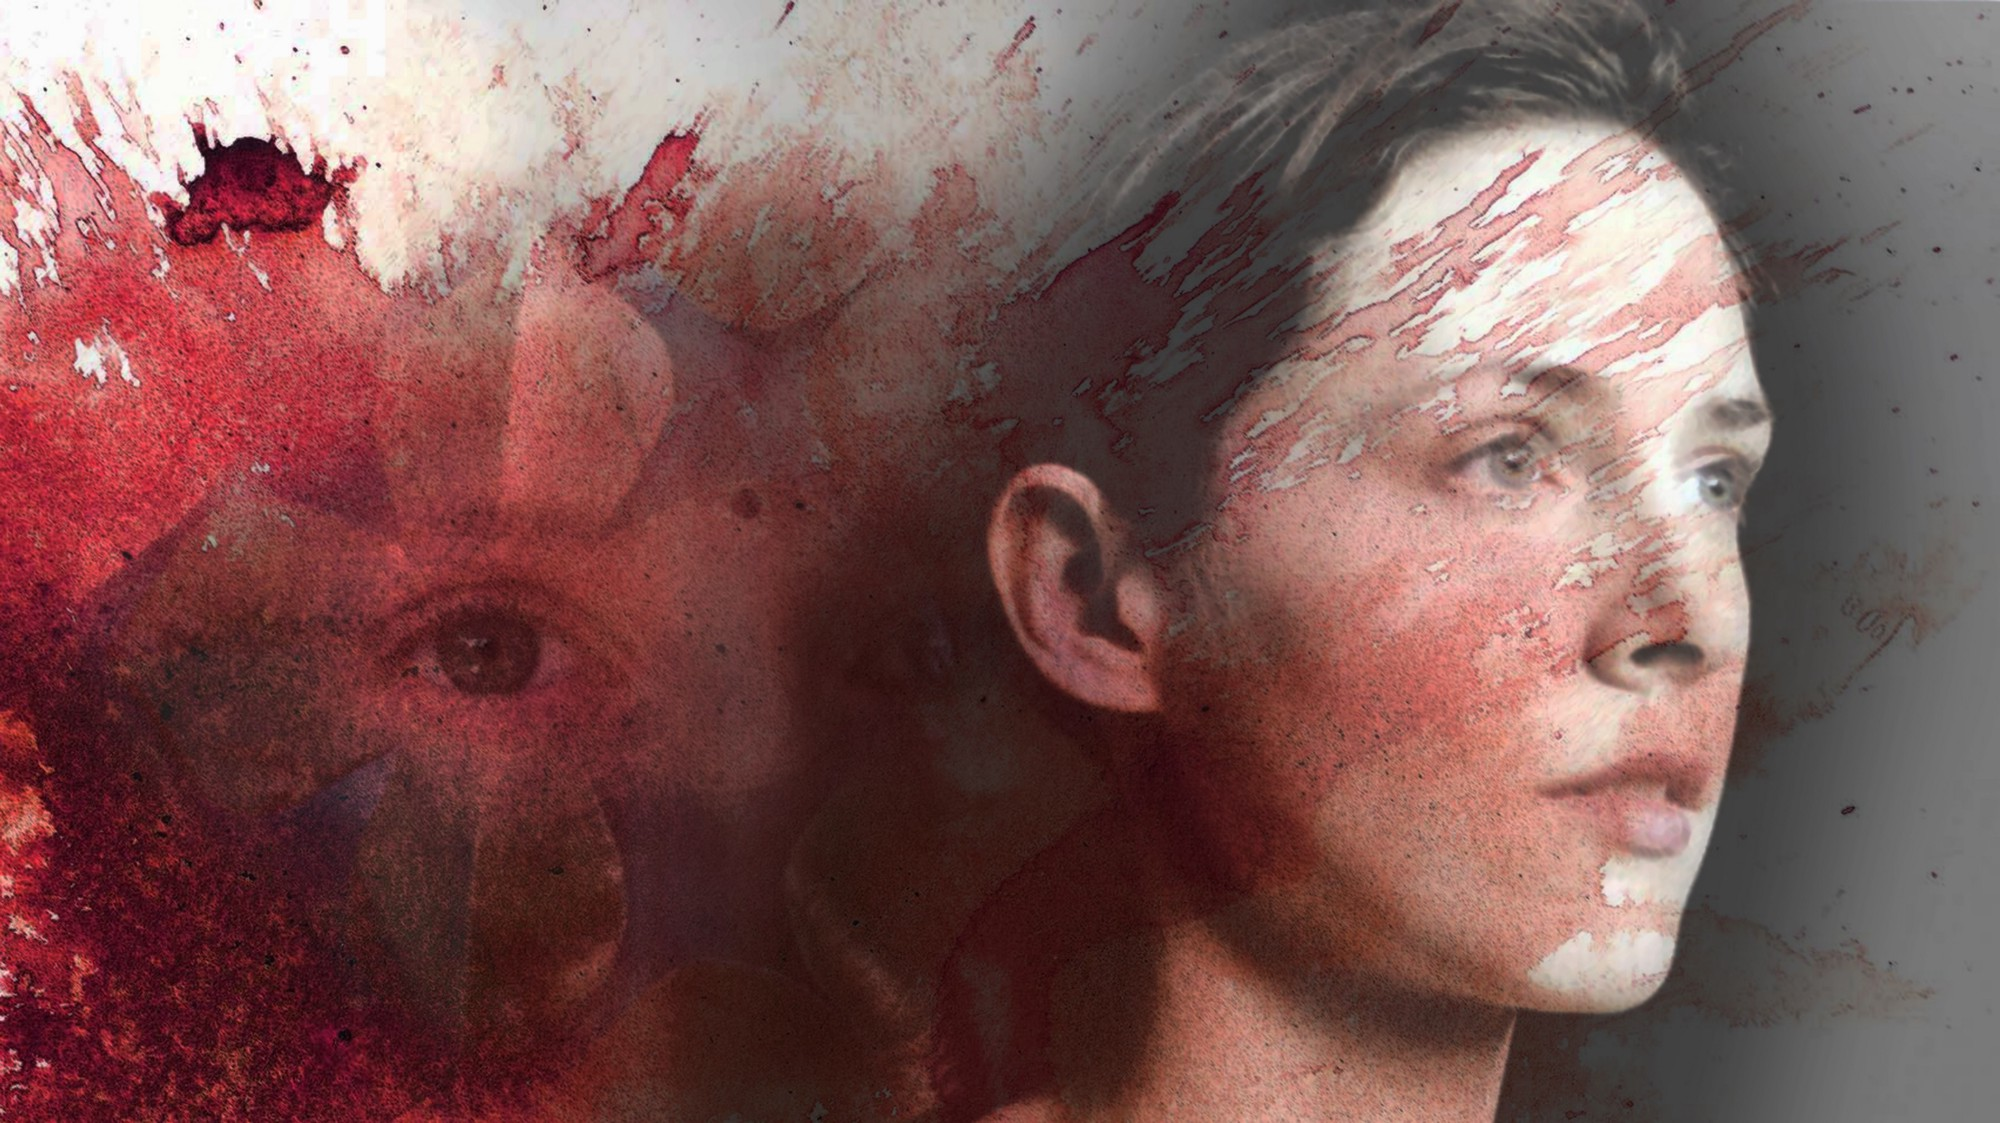 Composite image of a woman's profile, splashes of red paint and her eyes show faintly in the background.